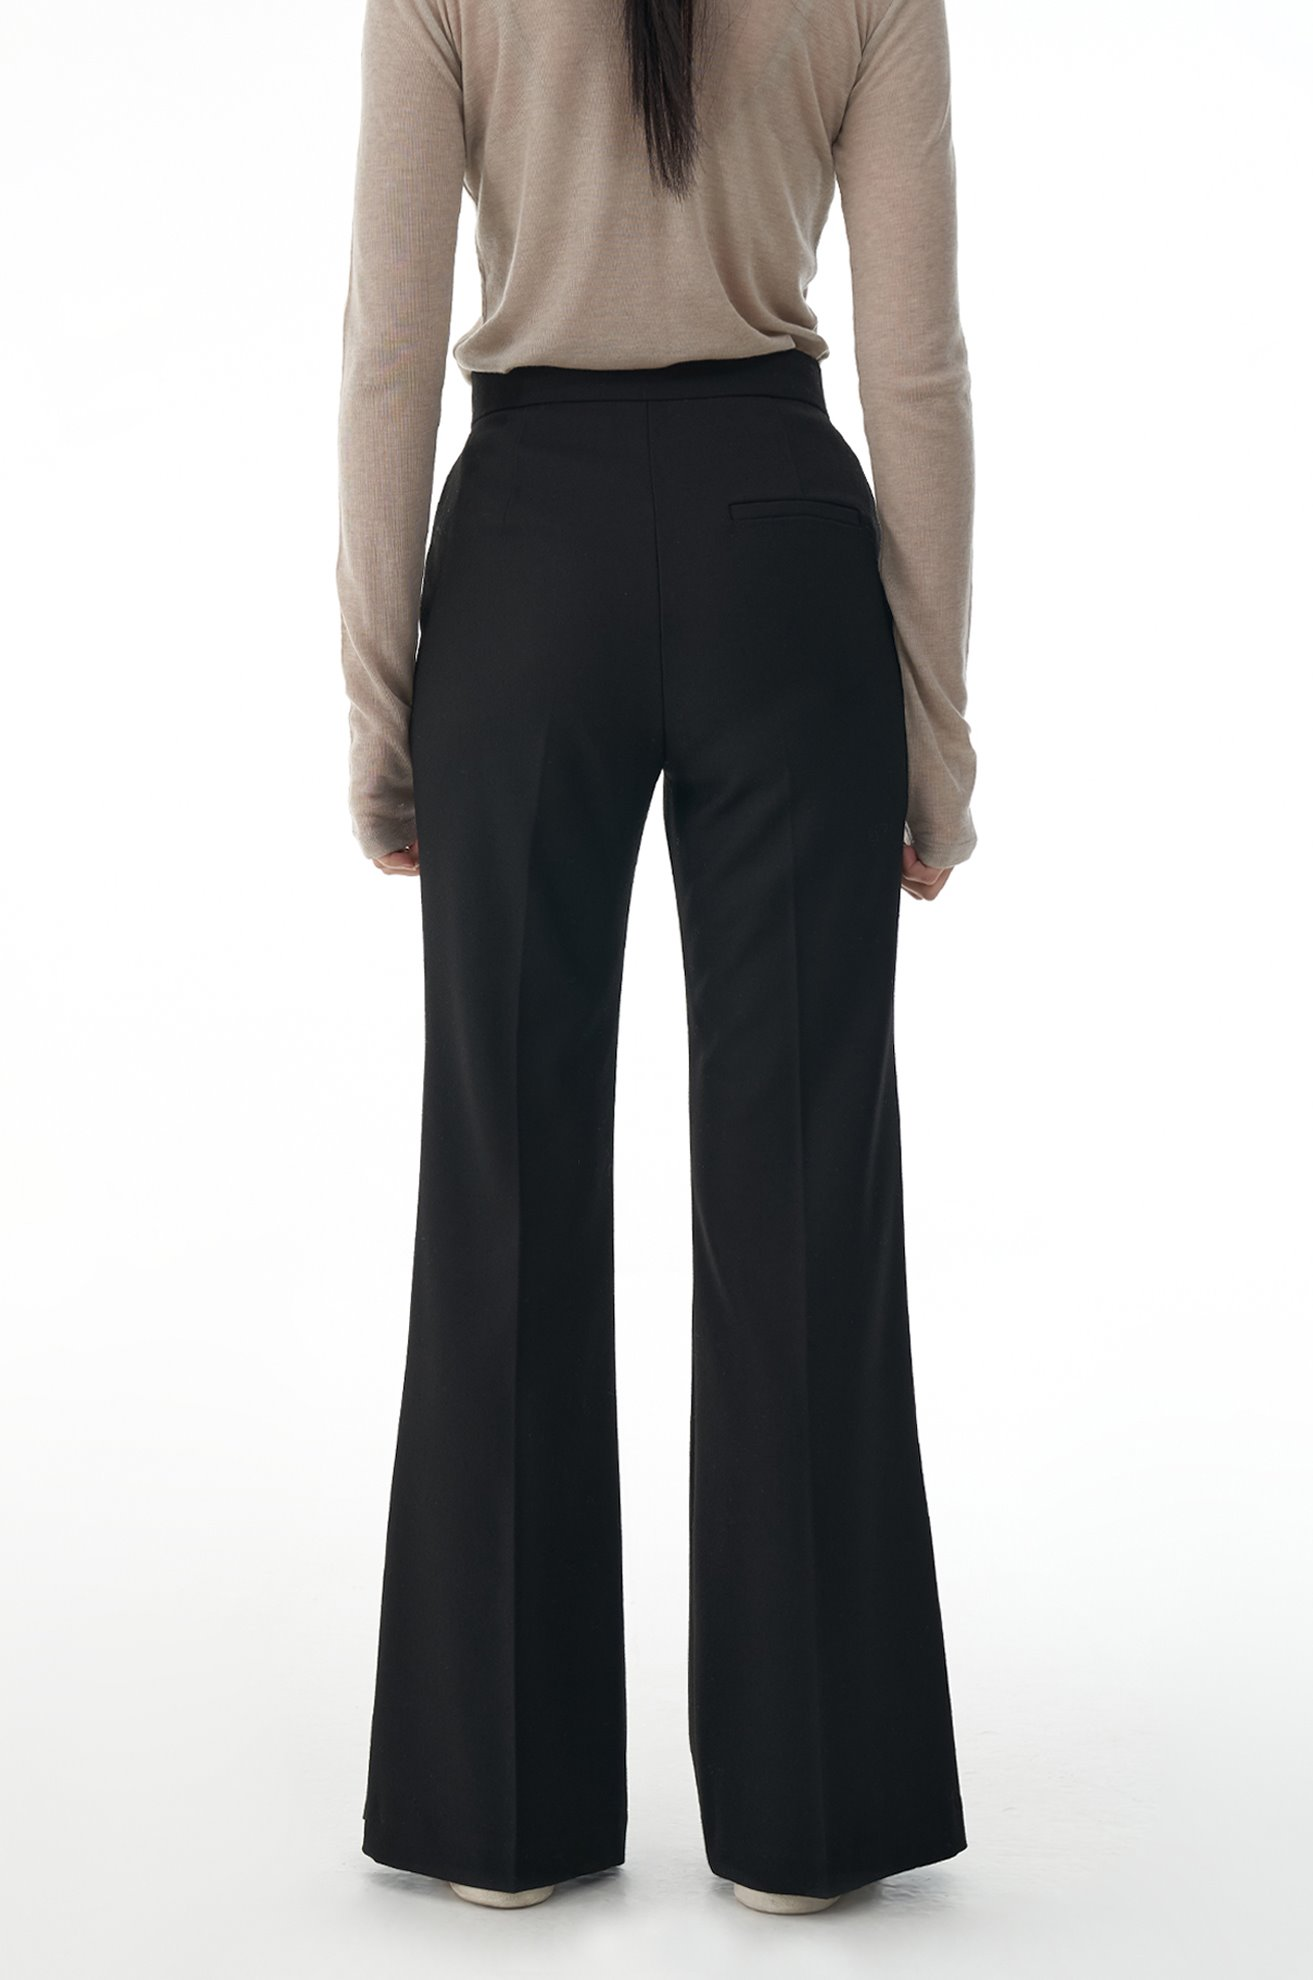 Boots Cut Slacks with Slit Hem (BLACK)